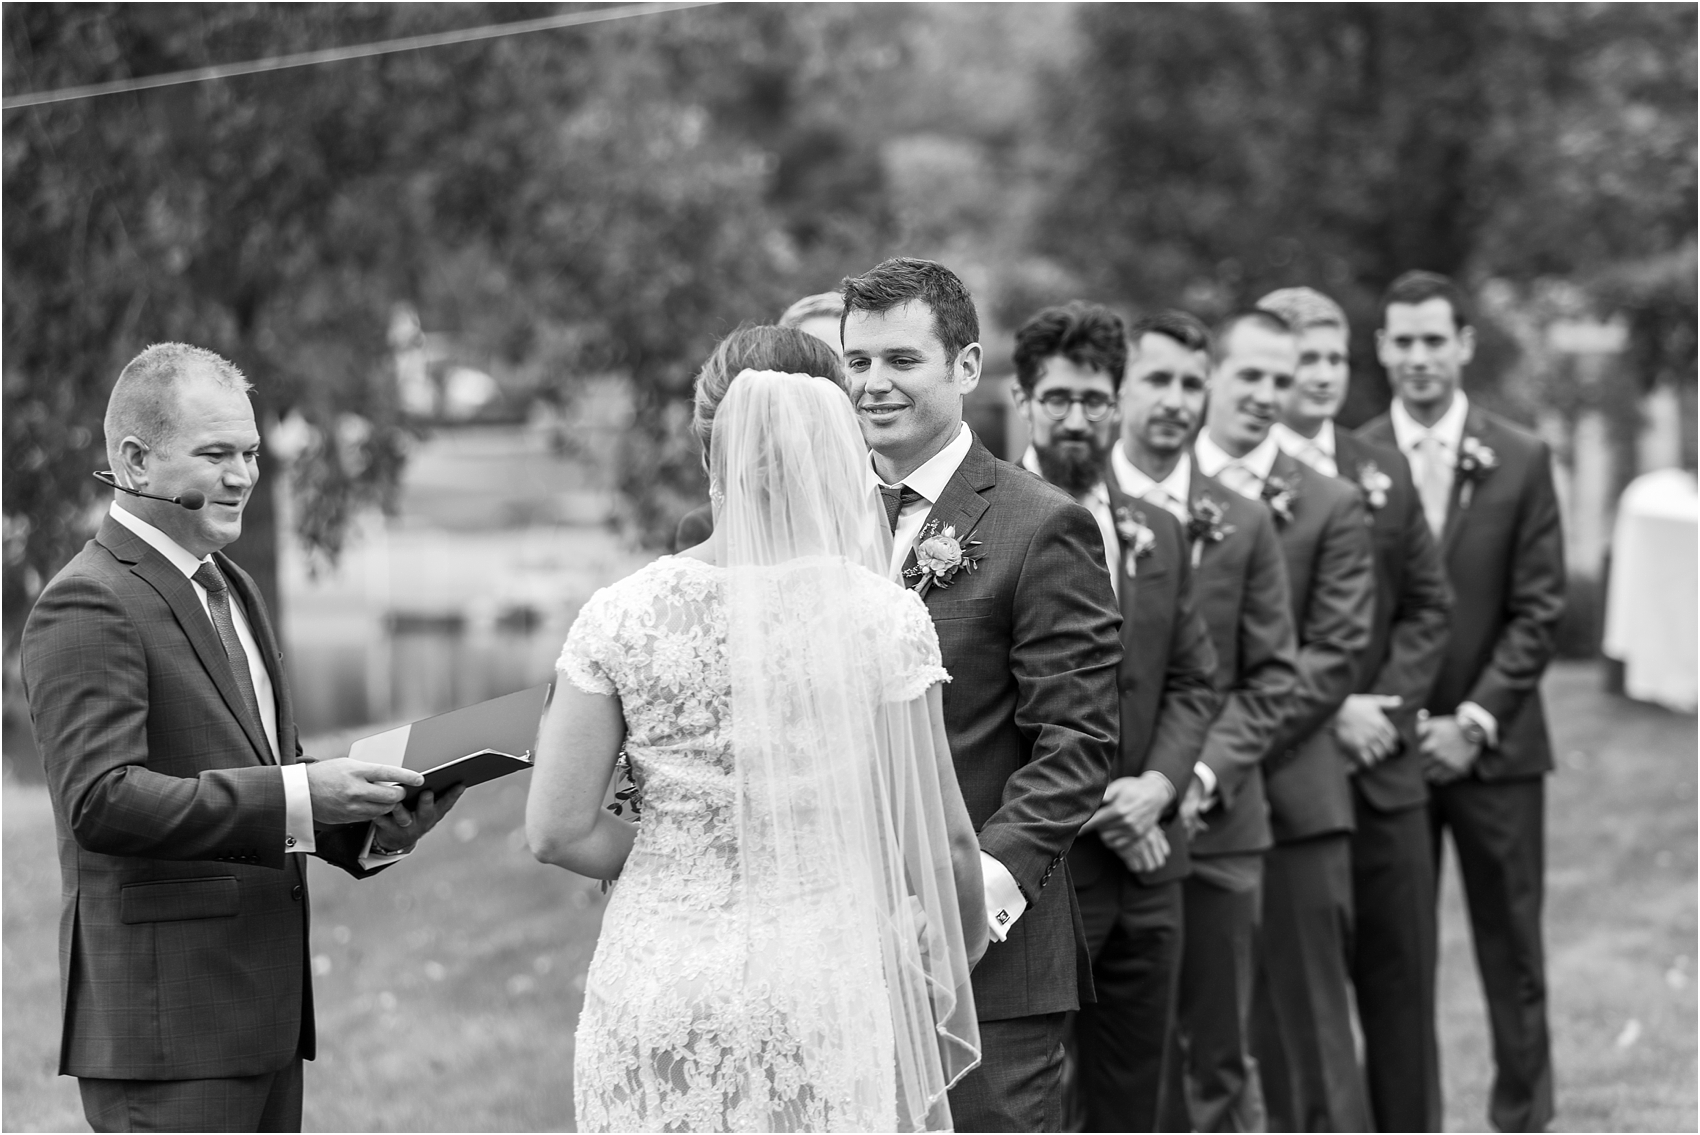 romantic-intimate-backyard-wedding-photos-at-private-estate-in-ann-arbor-mi-by-courtney-carolyn-photography_0092.jpg